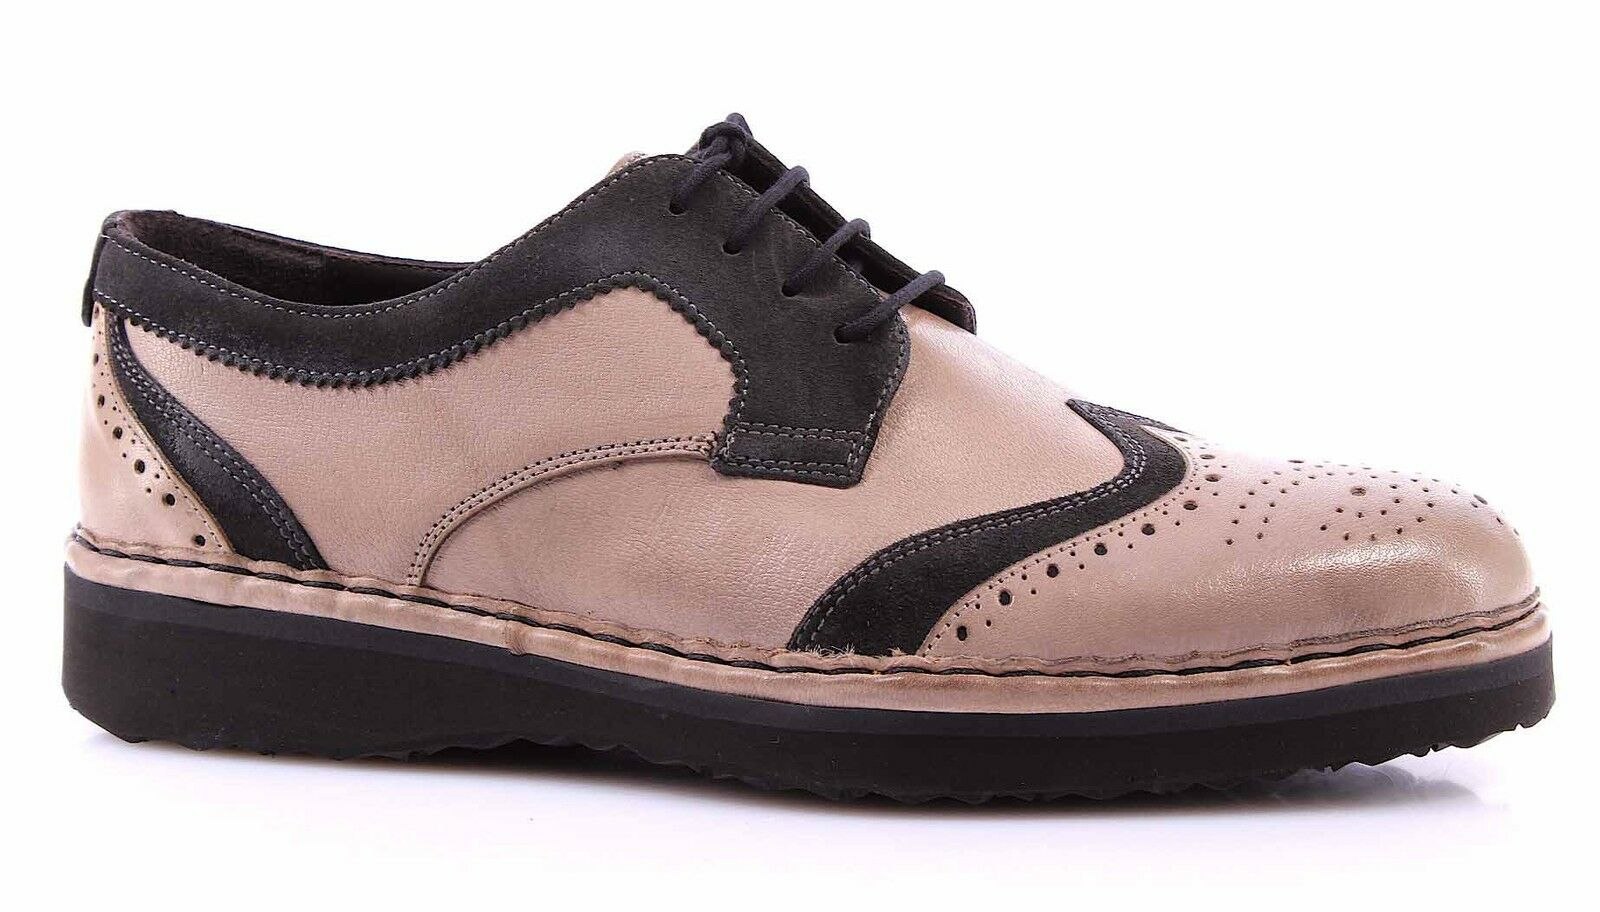 shoes men GALIZIO TORRESI 610536 Buf Fri grey SG Pelle grey Tortora